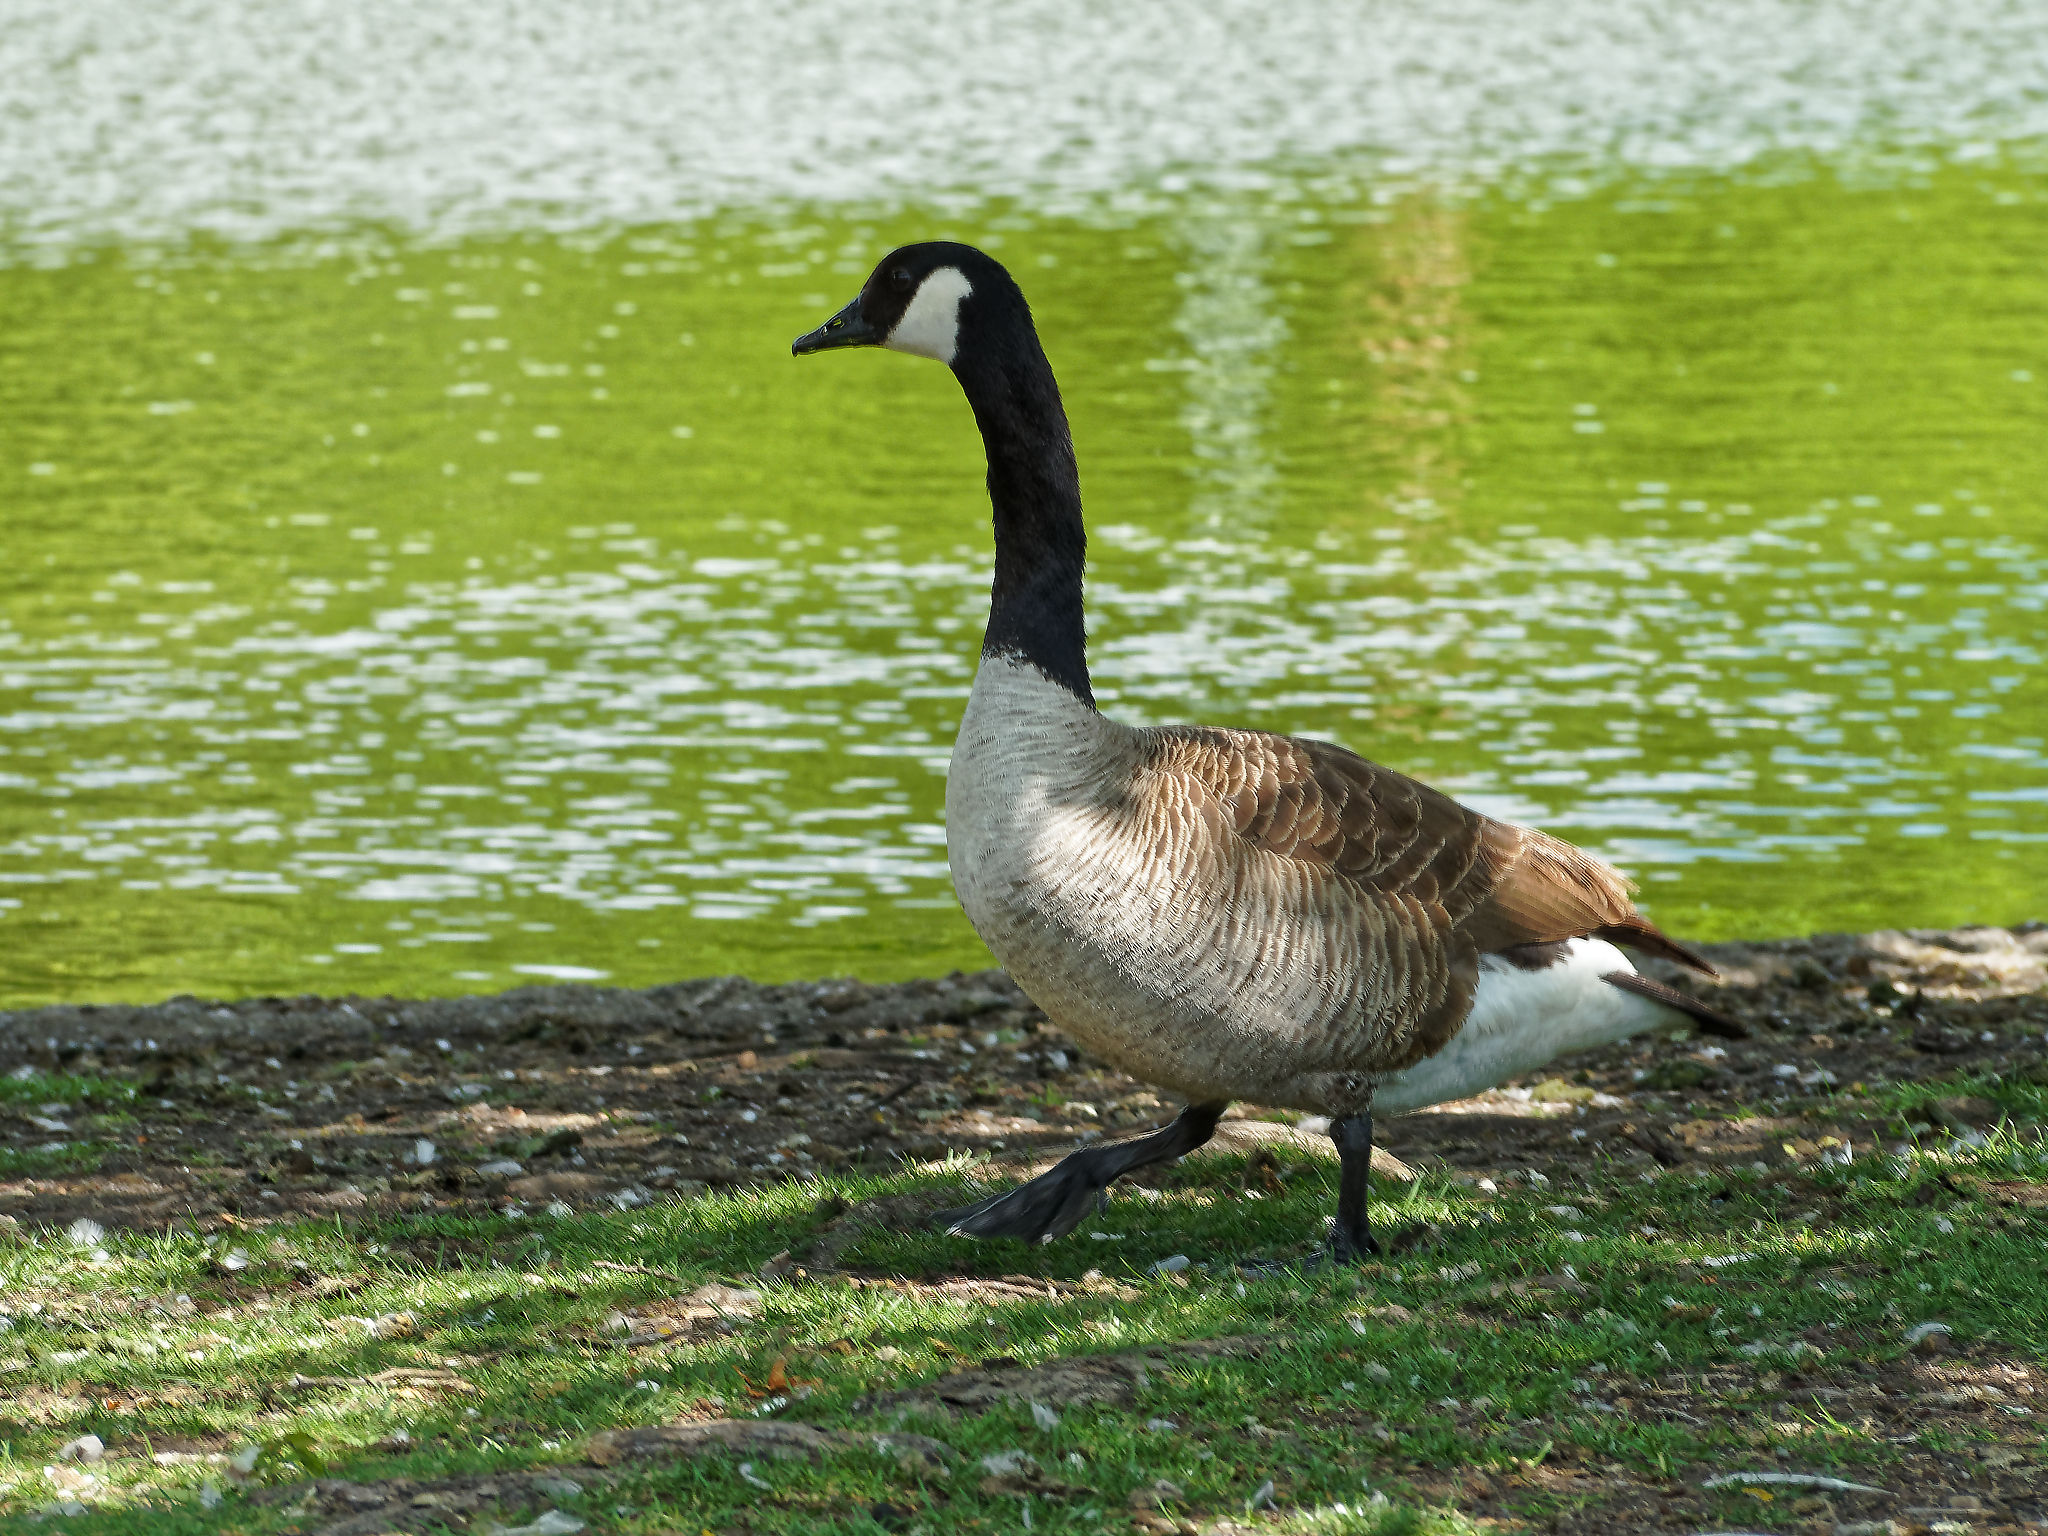 A canada goose waling by a pond